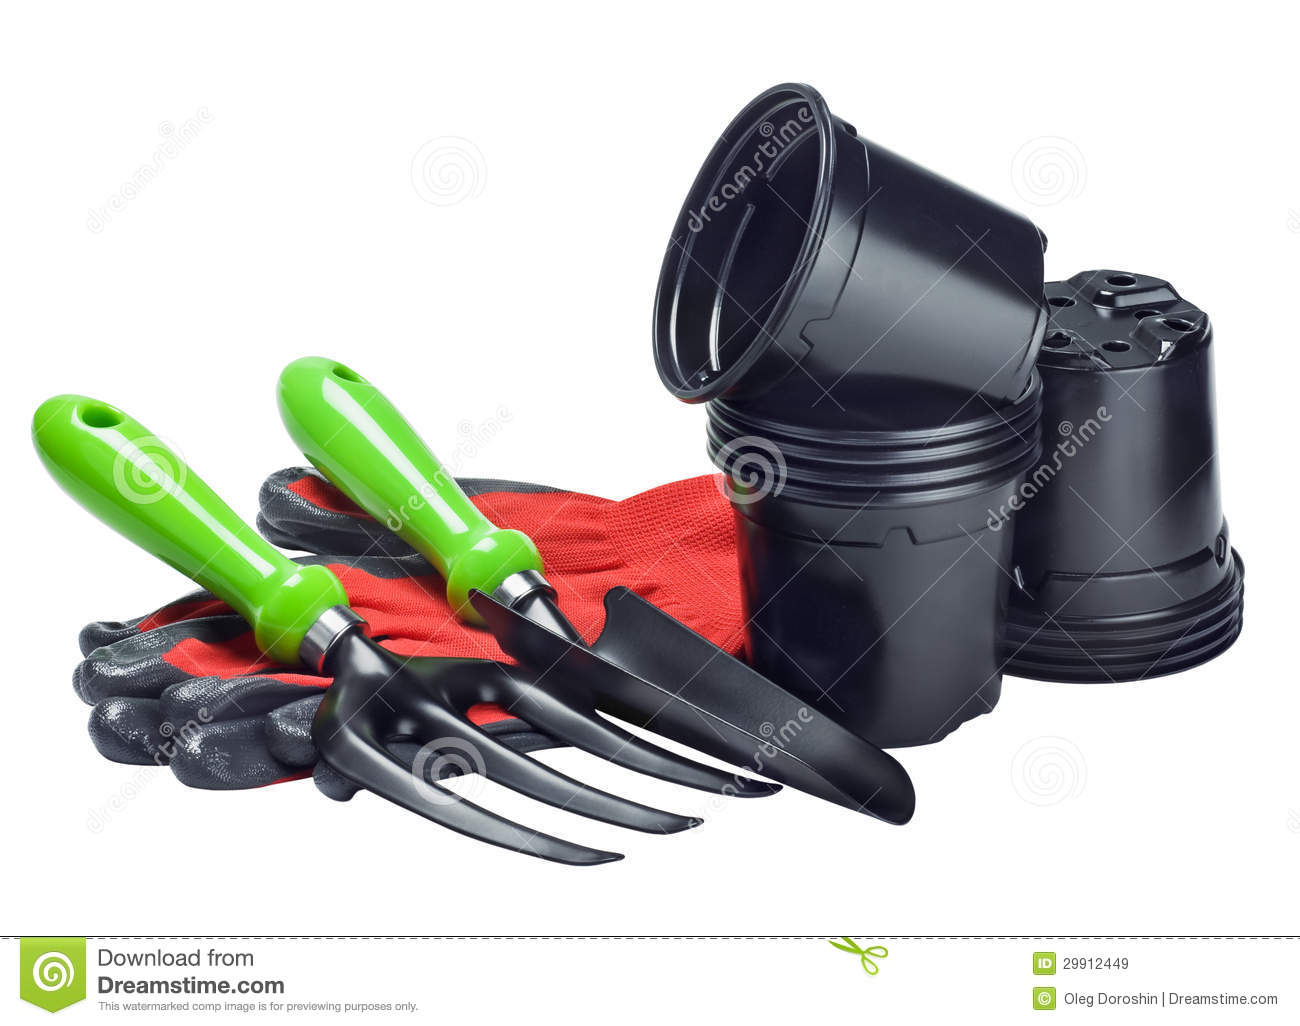 Garden tools and accessories royalty free stock images for Gardening tools and accessories